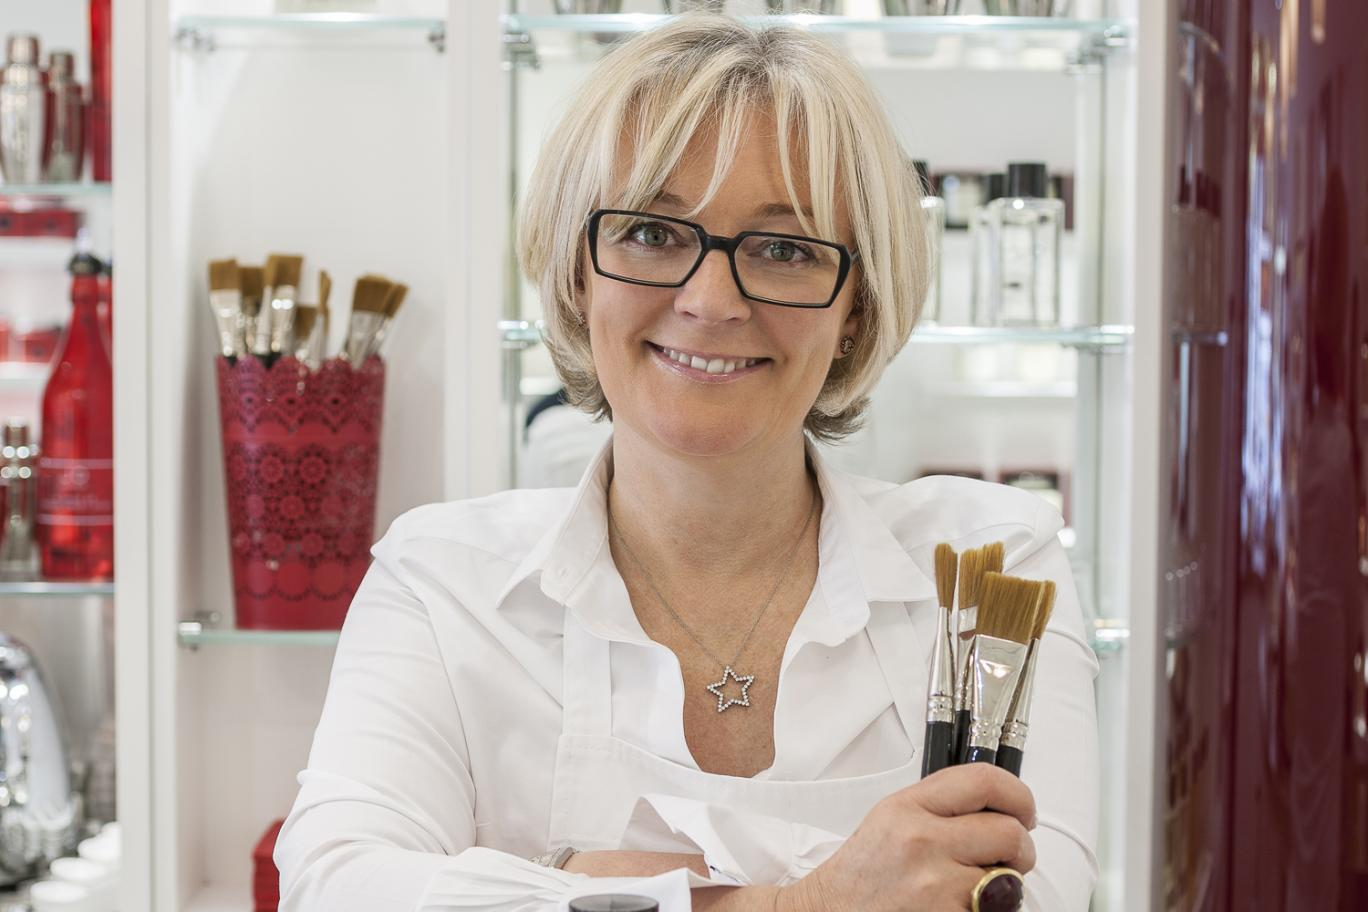 The Spirit Required To Build Iconic Brands. Jo Malone CBE, founder of Jo Loves - Brought to you by NatWest